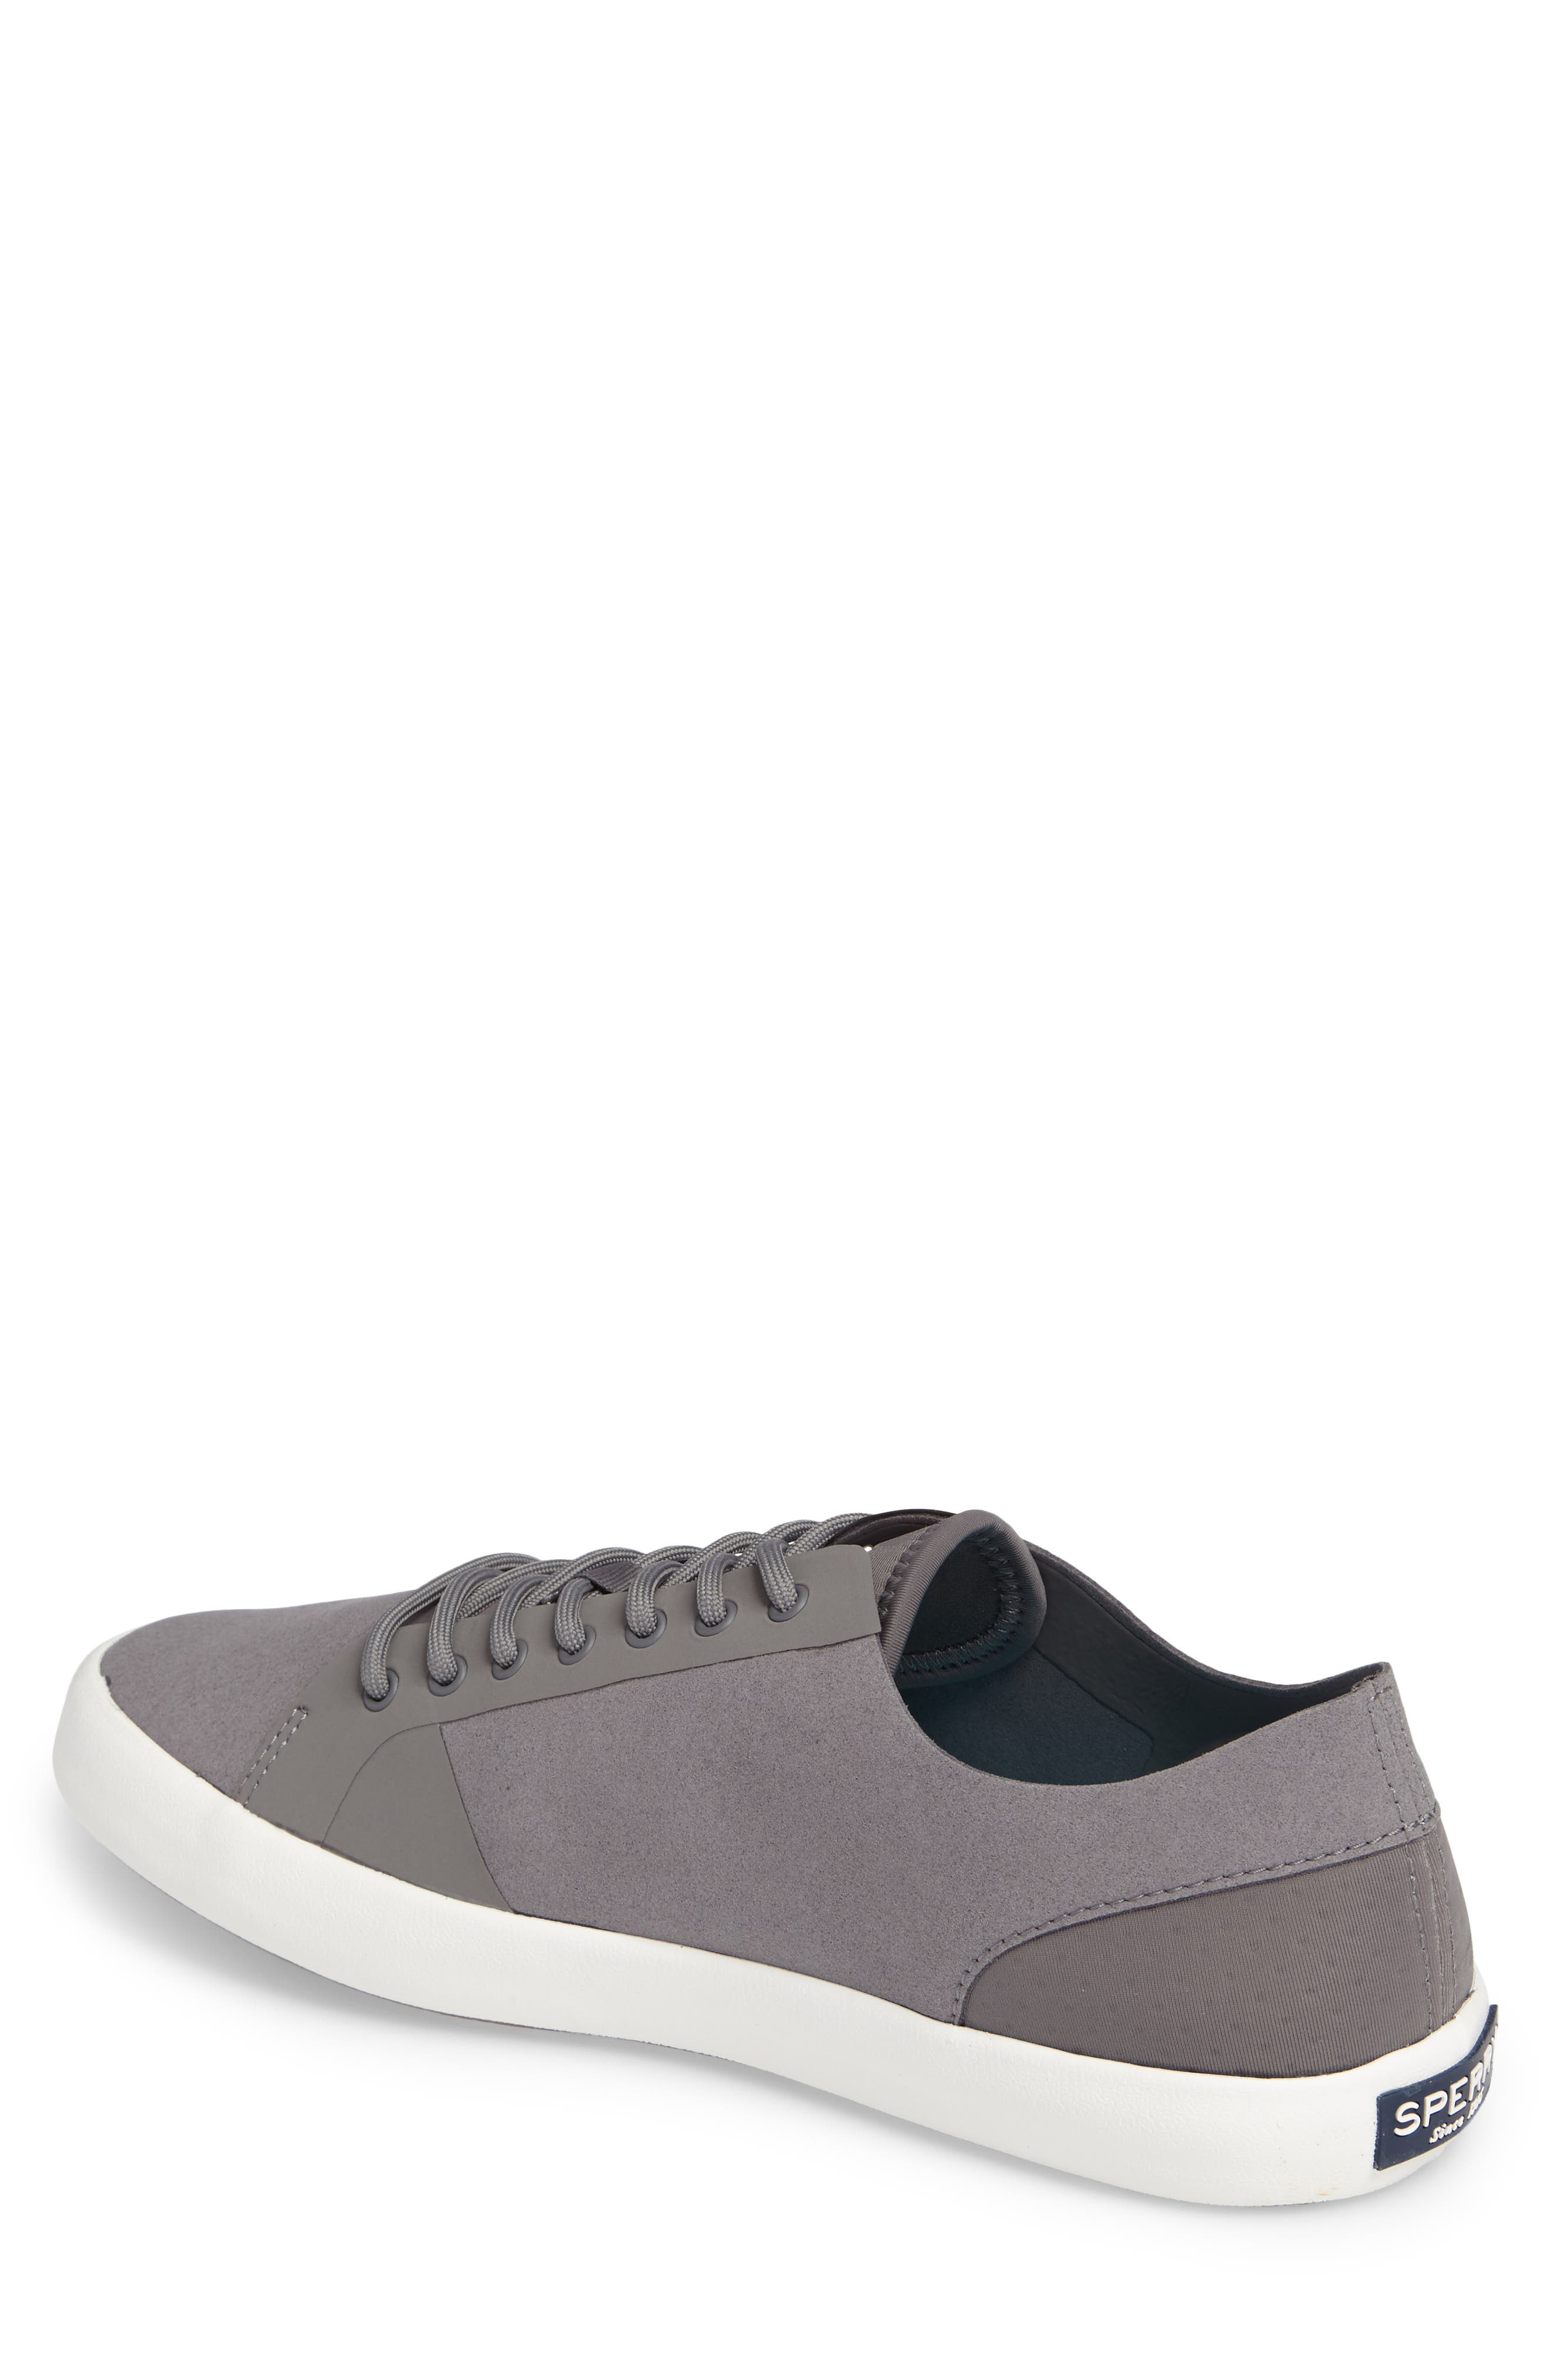 Flex Deck LTT Sneaker,                             Alternate thumbnail 2, color,                             GREY